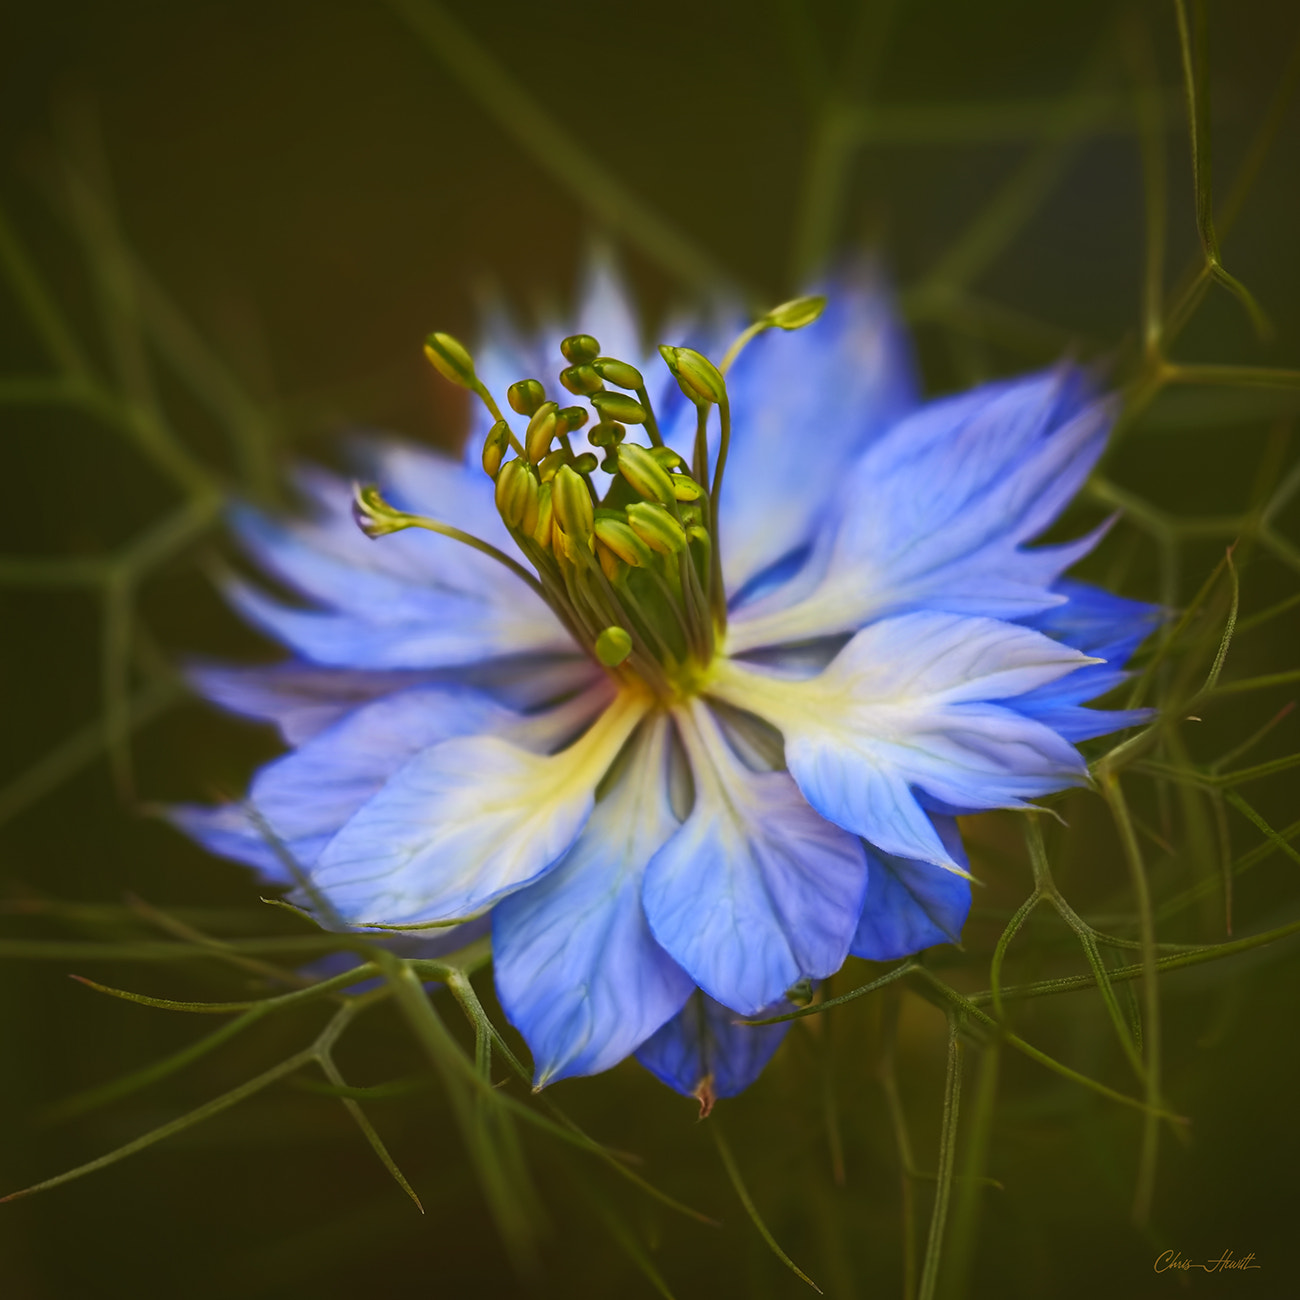 Photograph Nigella by Chris Hewitt on 500px